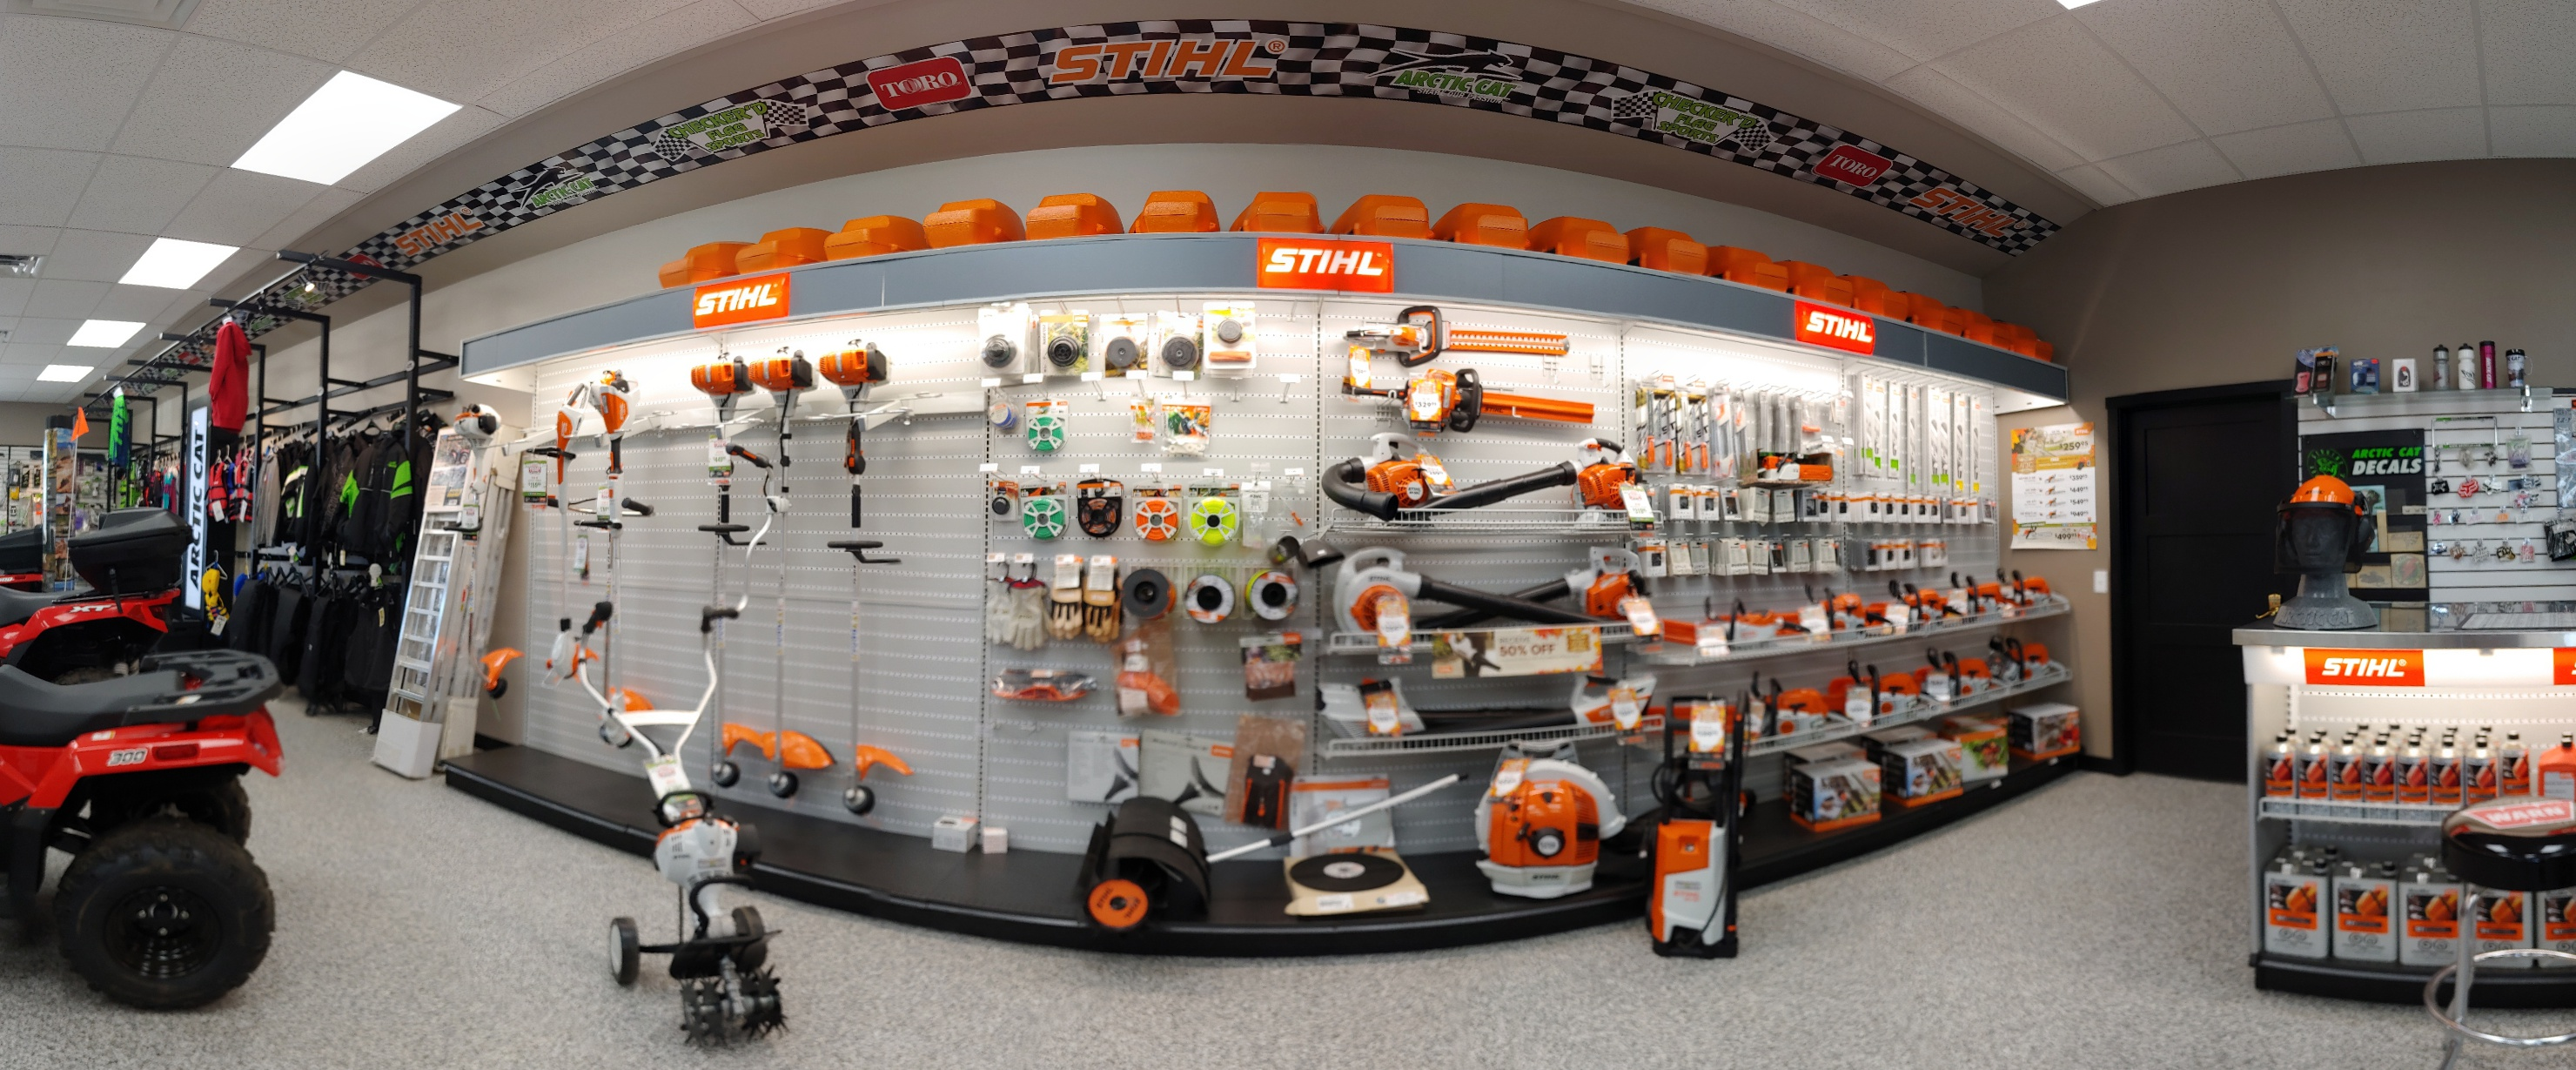 Stihl wall of products